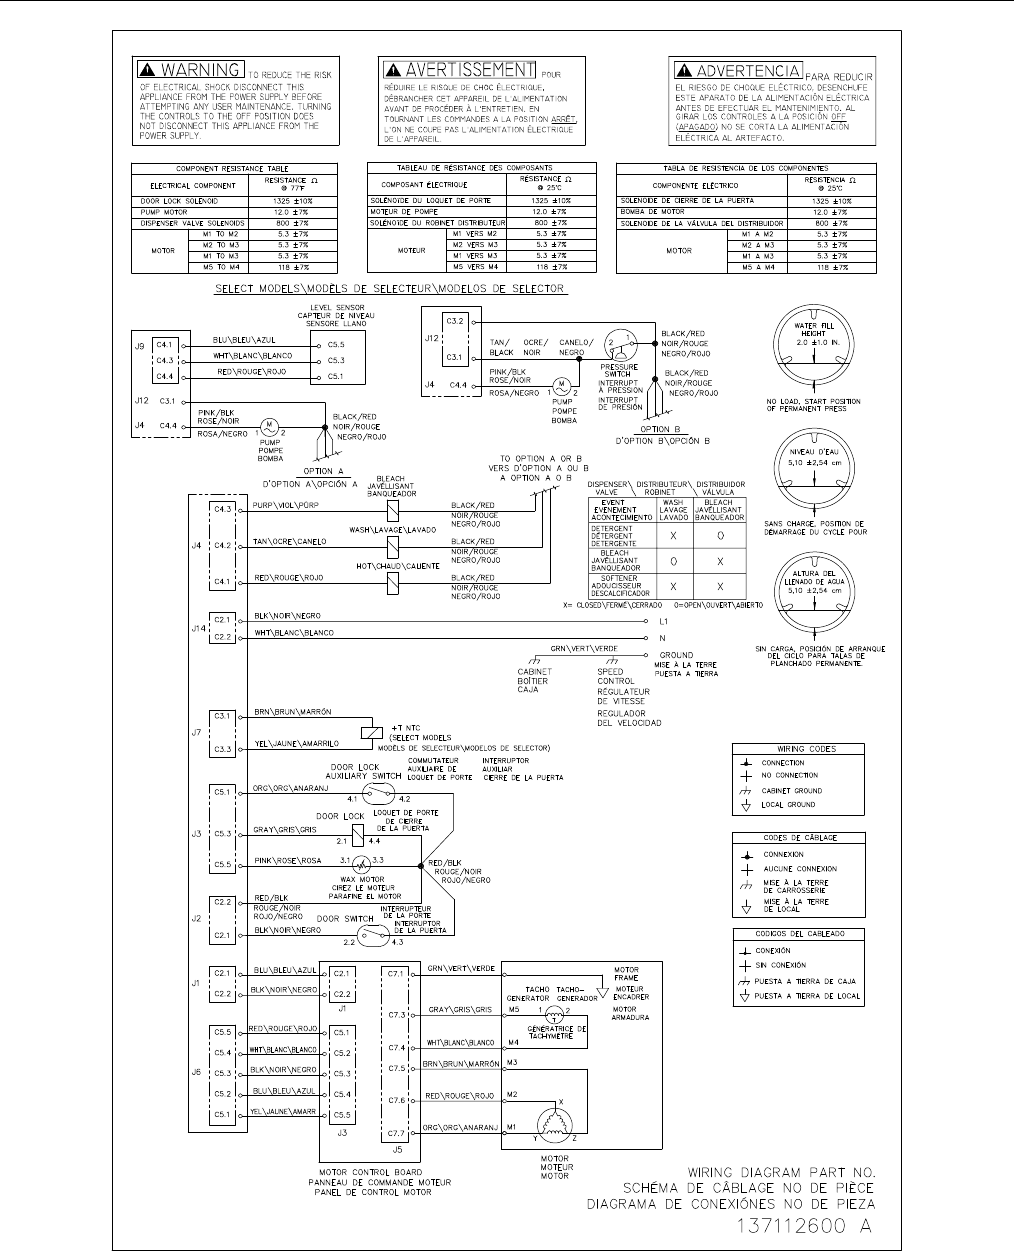 Electrolux Gibson Washer Gltf2940fe2 Users Manual To Begin A Parts Wiring Diagram Publication No 5995535290 Gltf2940f 03 09 8